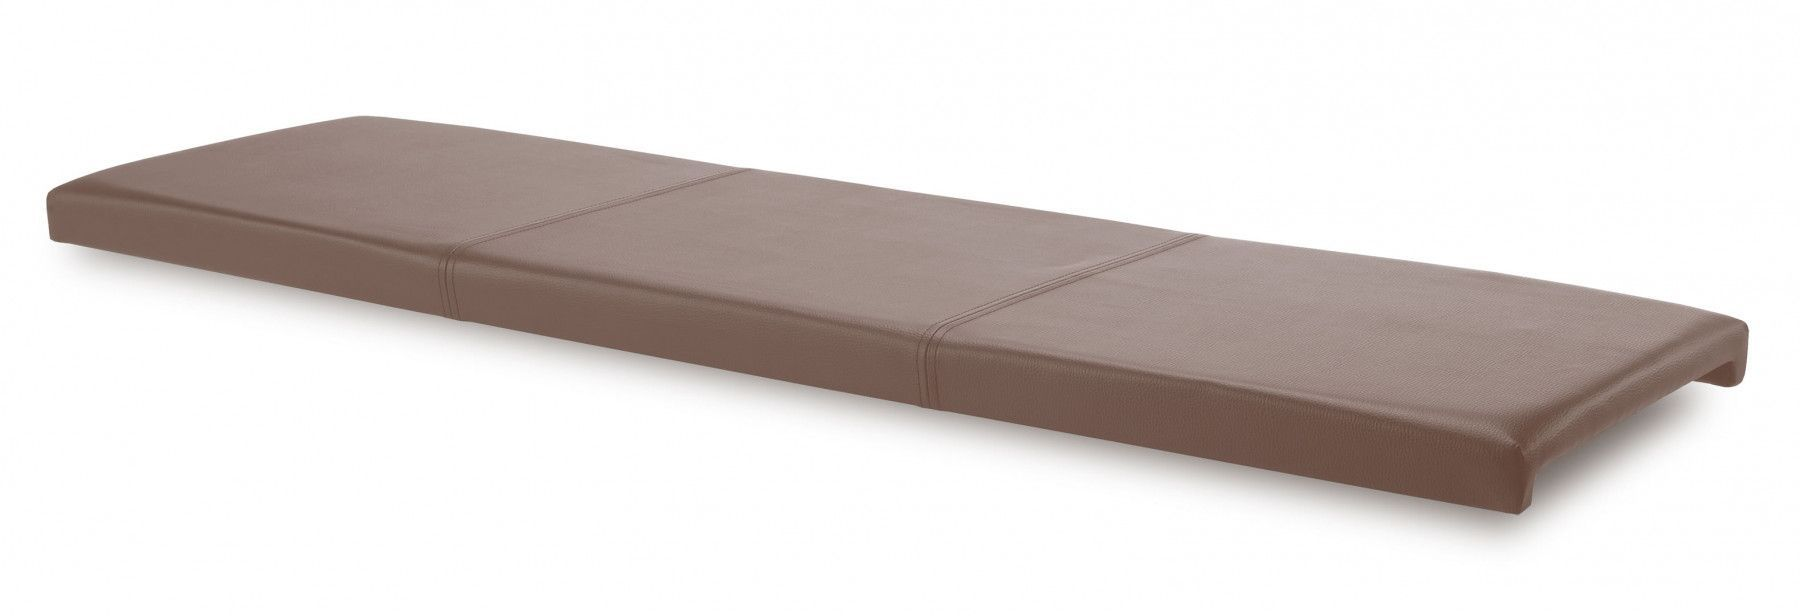 Banc Coussin Dassise Pour Banc Oswald Cappuccino Trocity